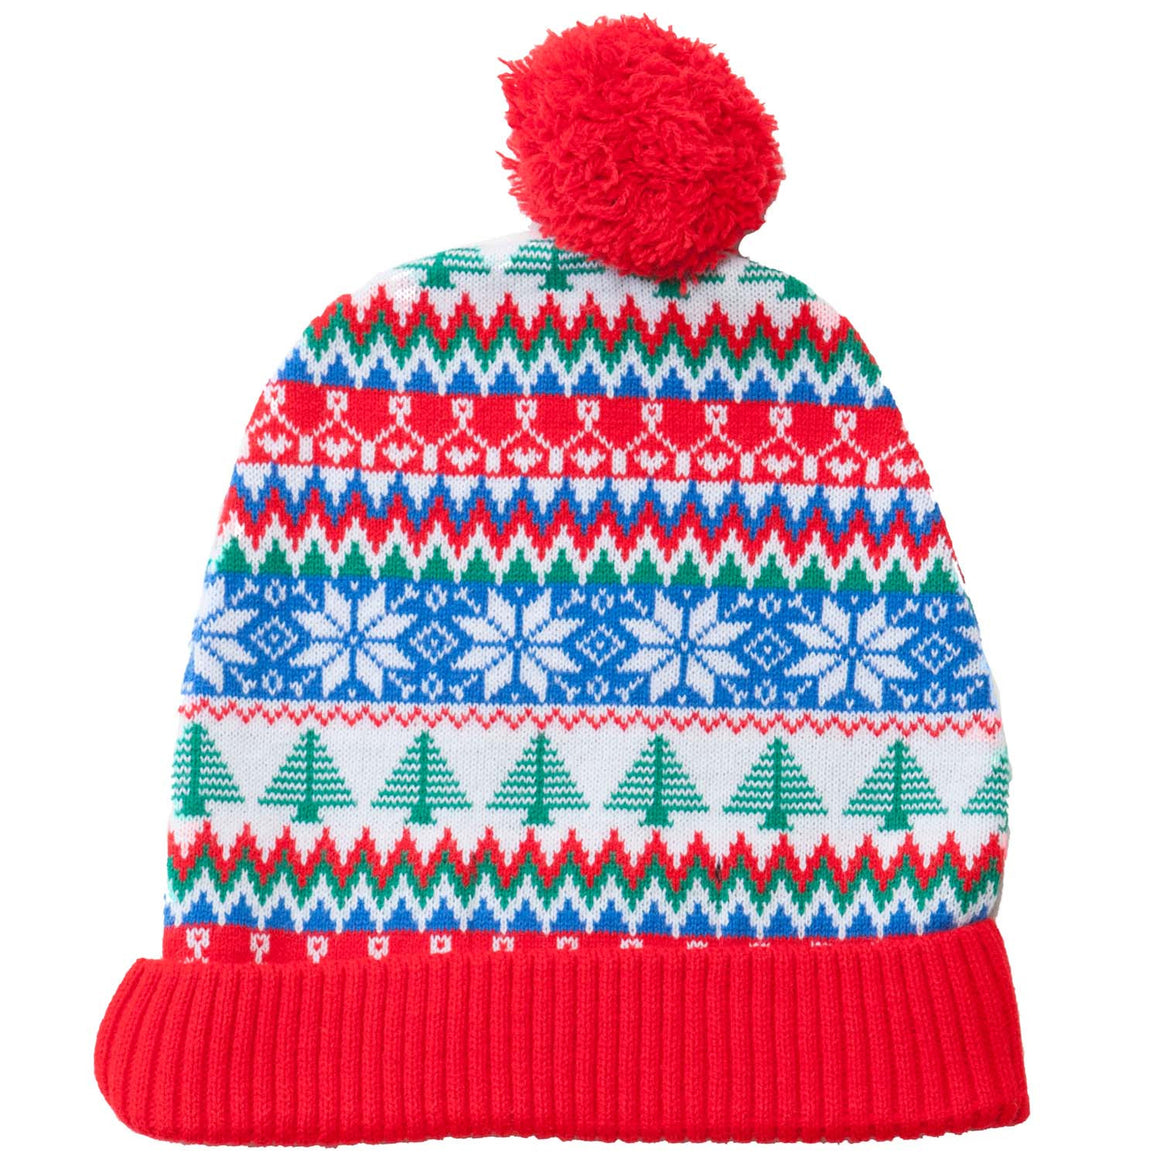 Red and green Xmas tree beanie bobble winter hat